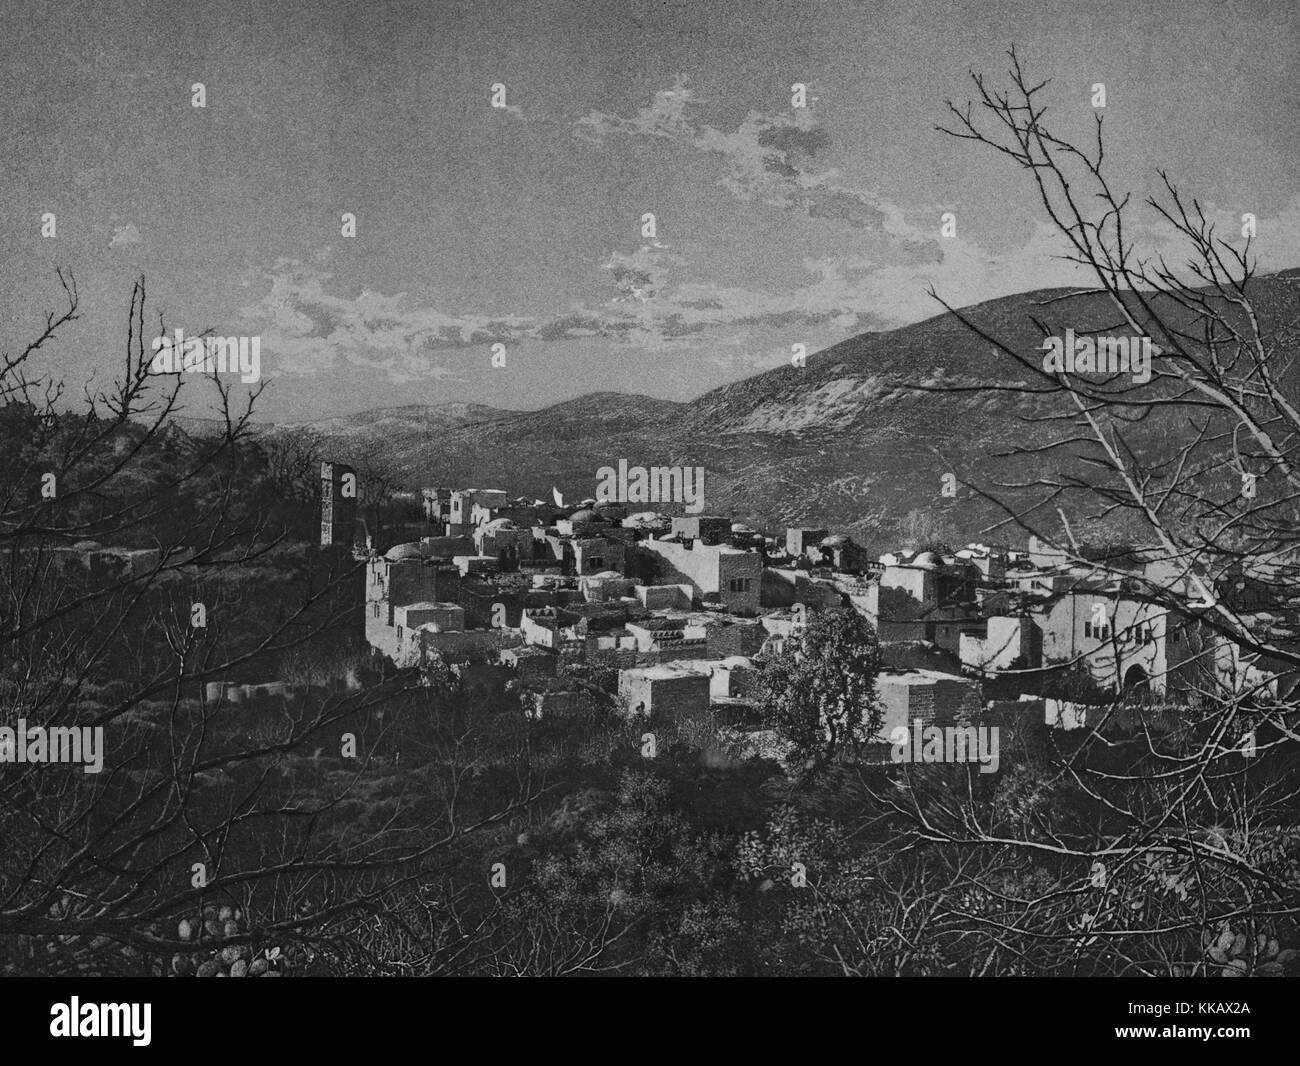 A photograph of the city of Nablus taken from a hill side, the city is a center for Palestinian culture and commerce, - Stock Image